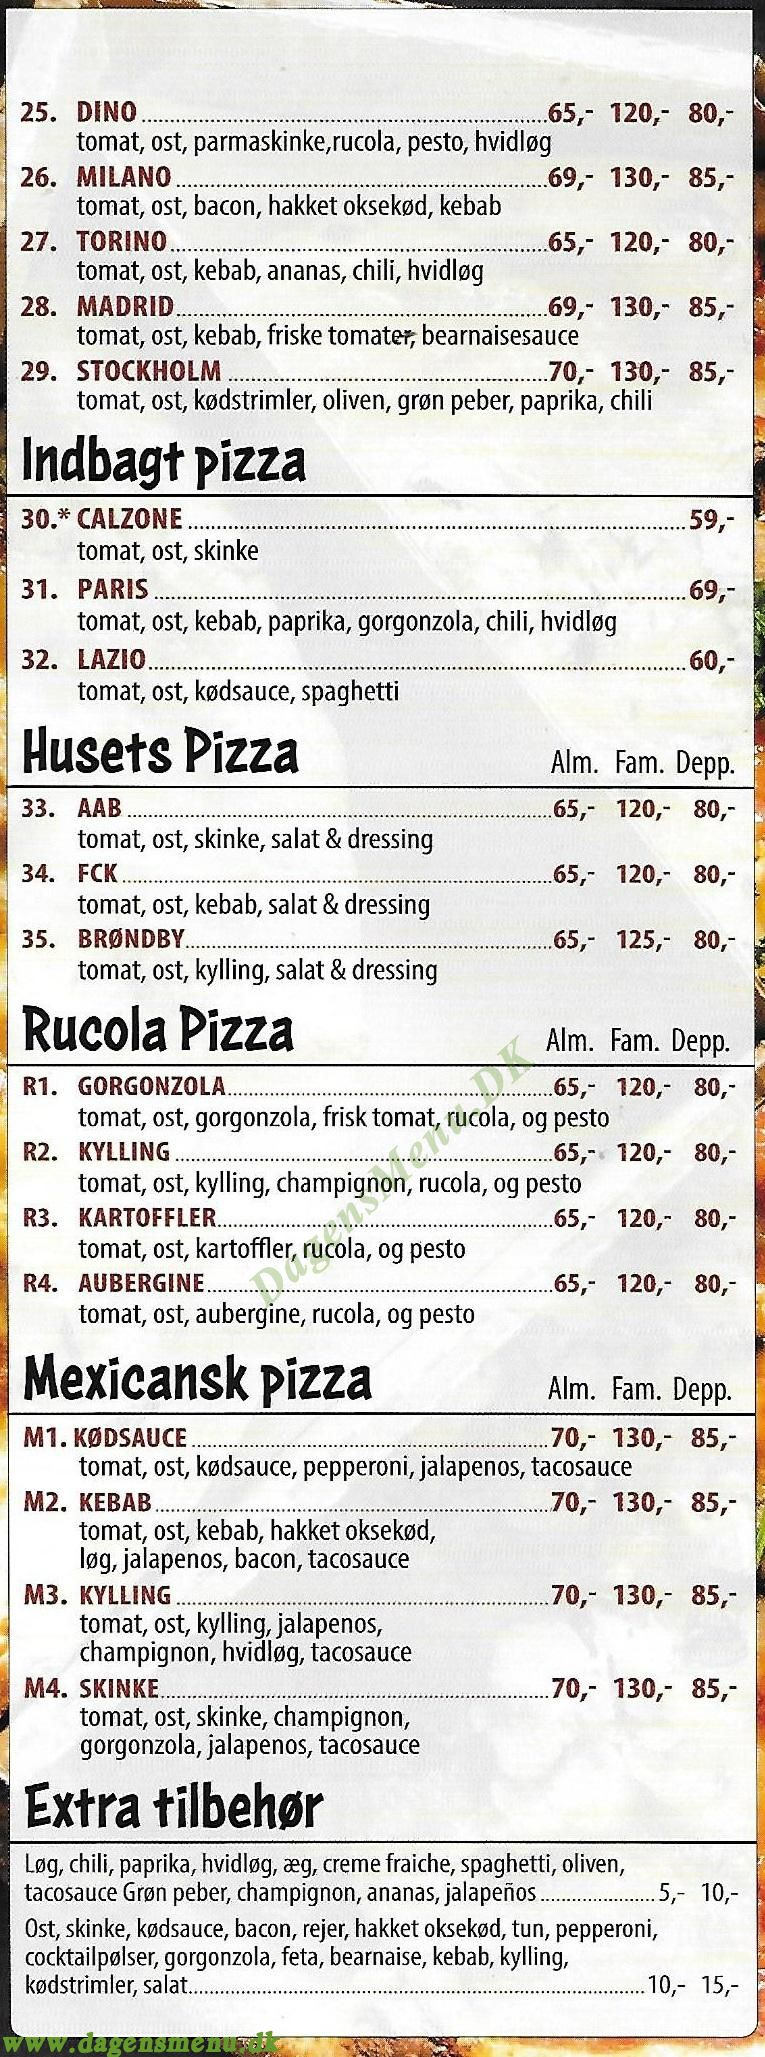 Luccas Cafe & Pizza - Menukort